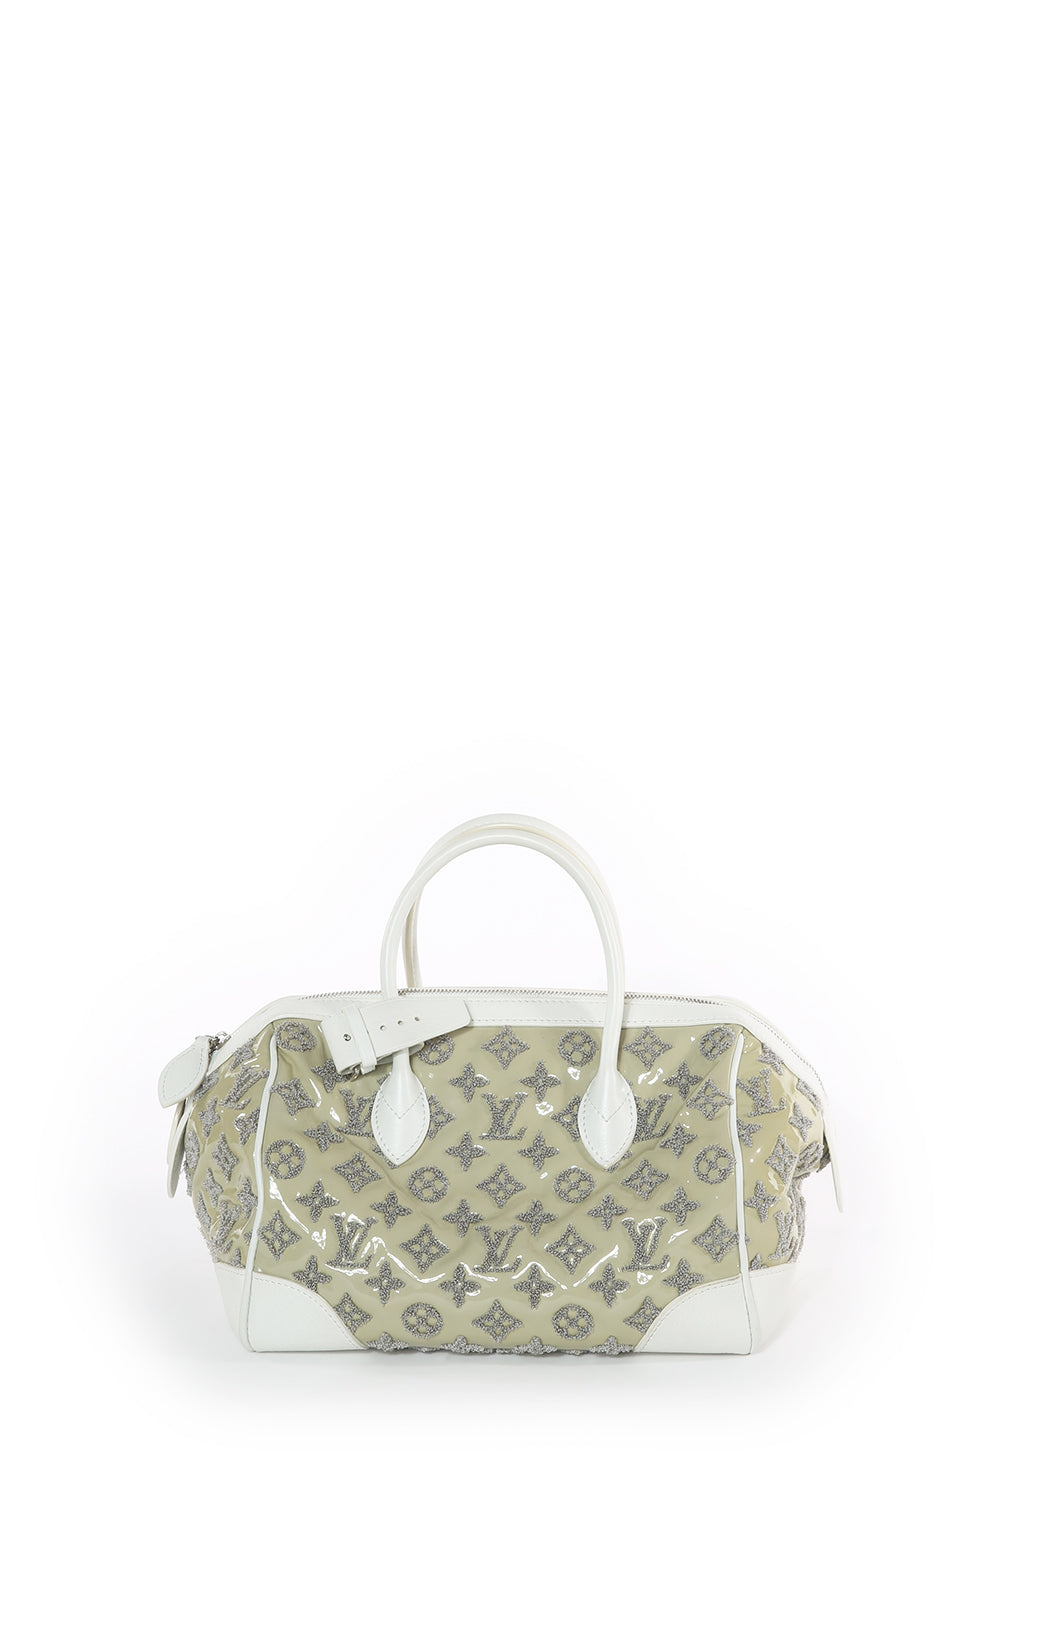 Back view of LOUIS VUITTON Handbag